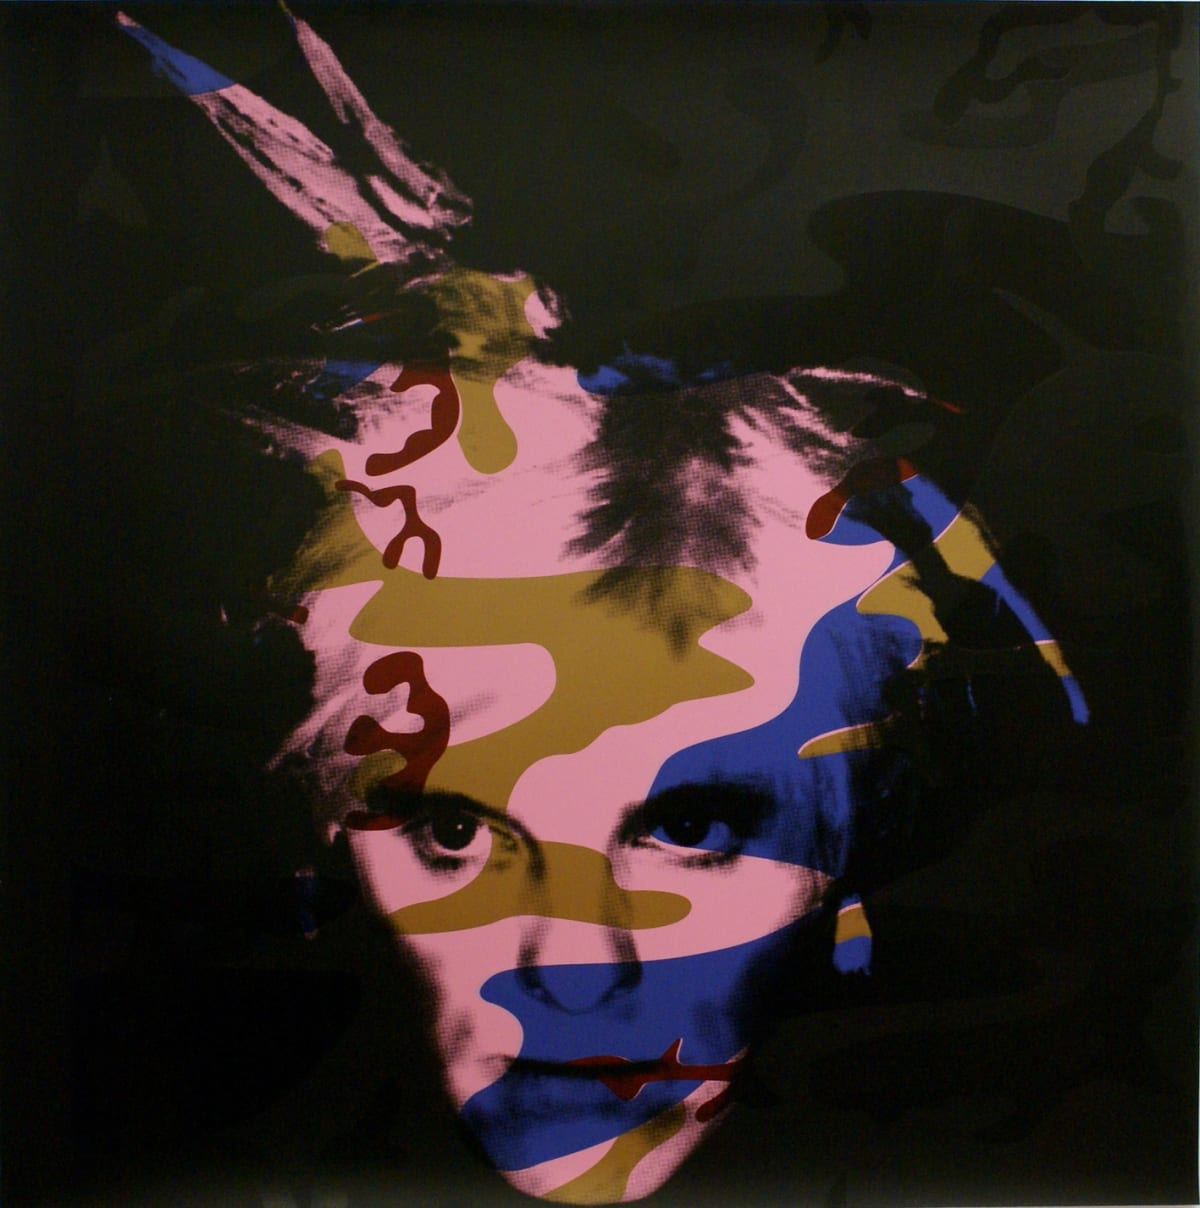 Gavin Turk Camouflage Fright Wig - Blue and Bronze on Pink Signed, numbered and dated,, 2007 Silkscreen on Somerset satin, 410gsm 100 x 100cm 39.4 x 39.4 Edition of 40